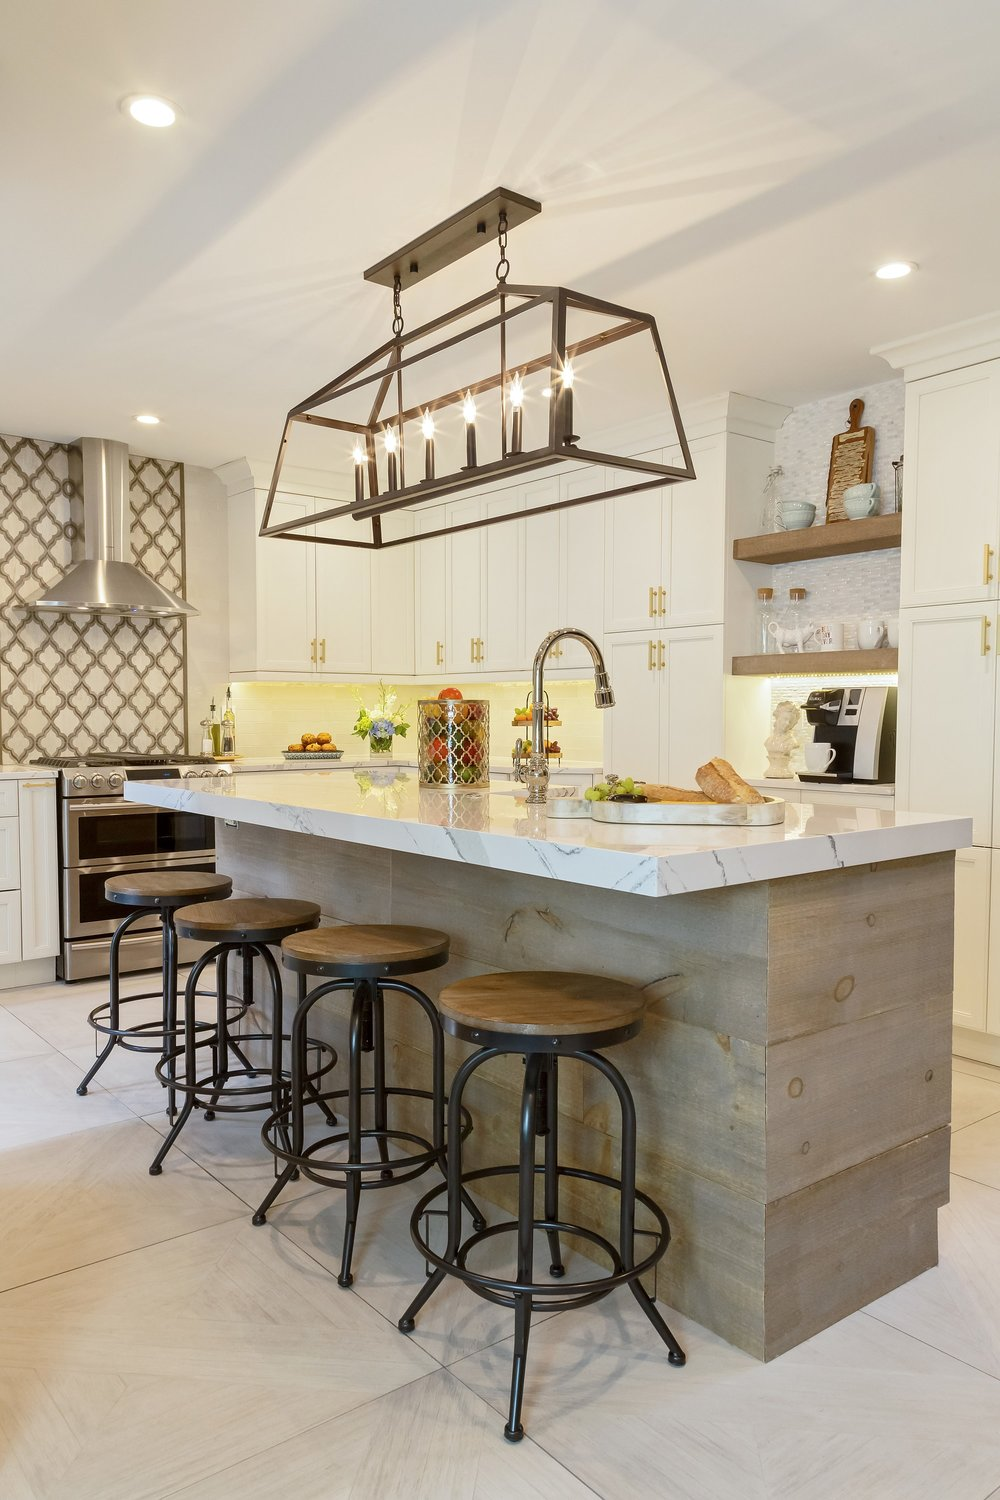 Transitional style kitchen with center island and counter stools